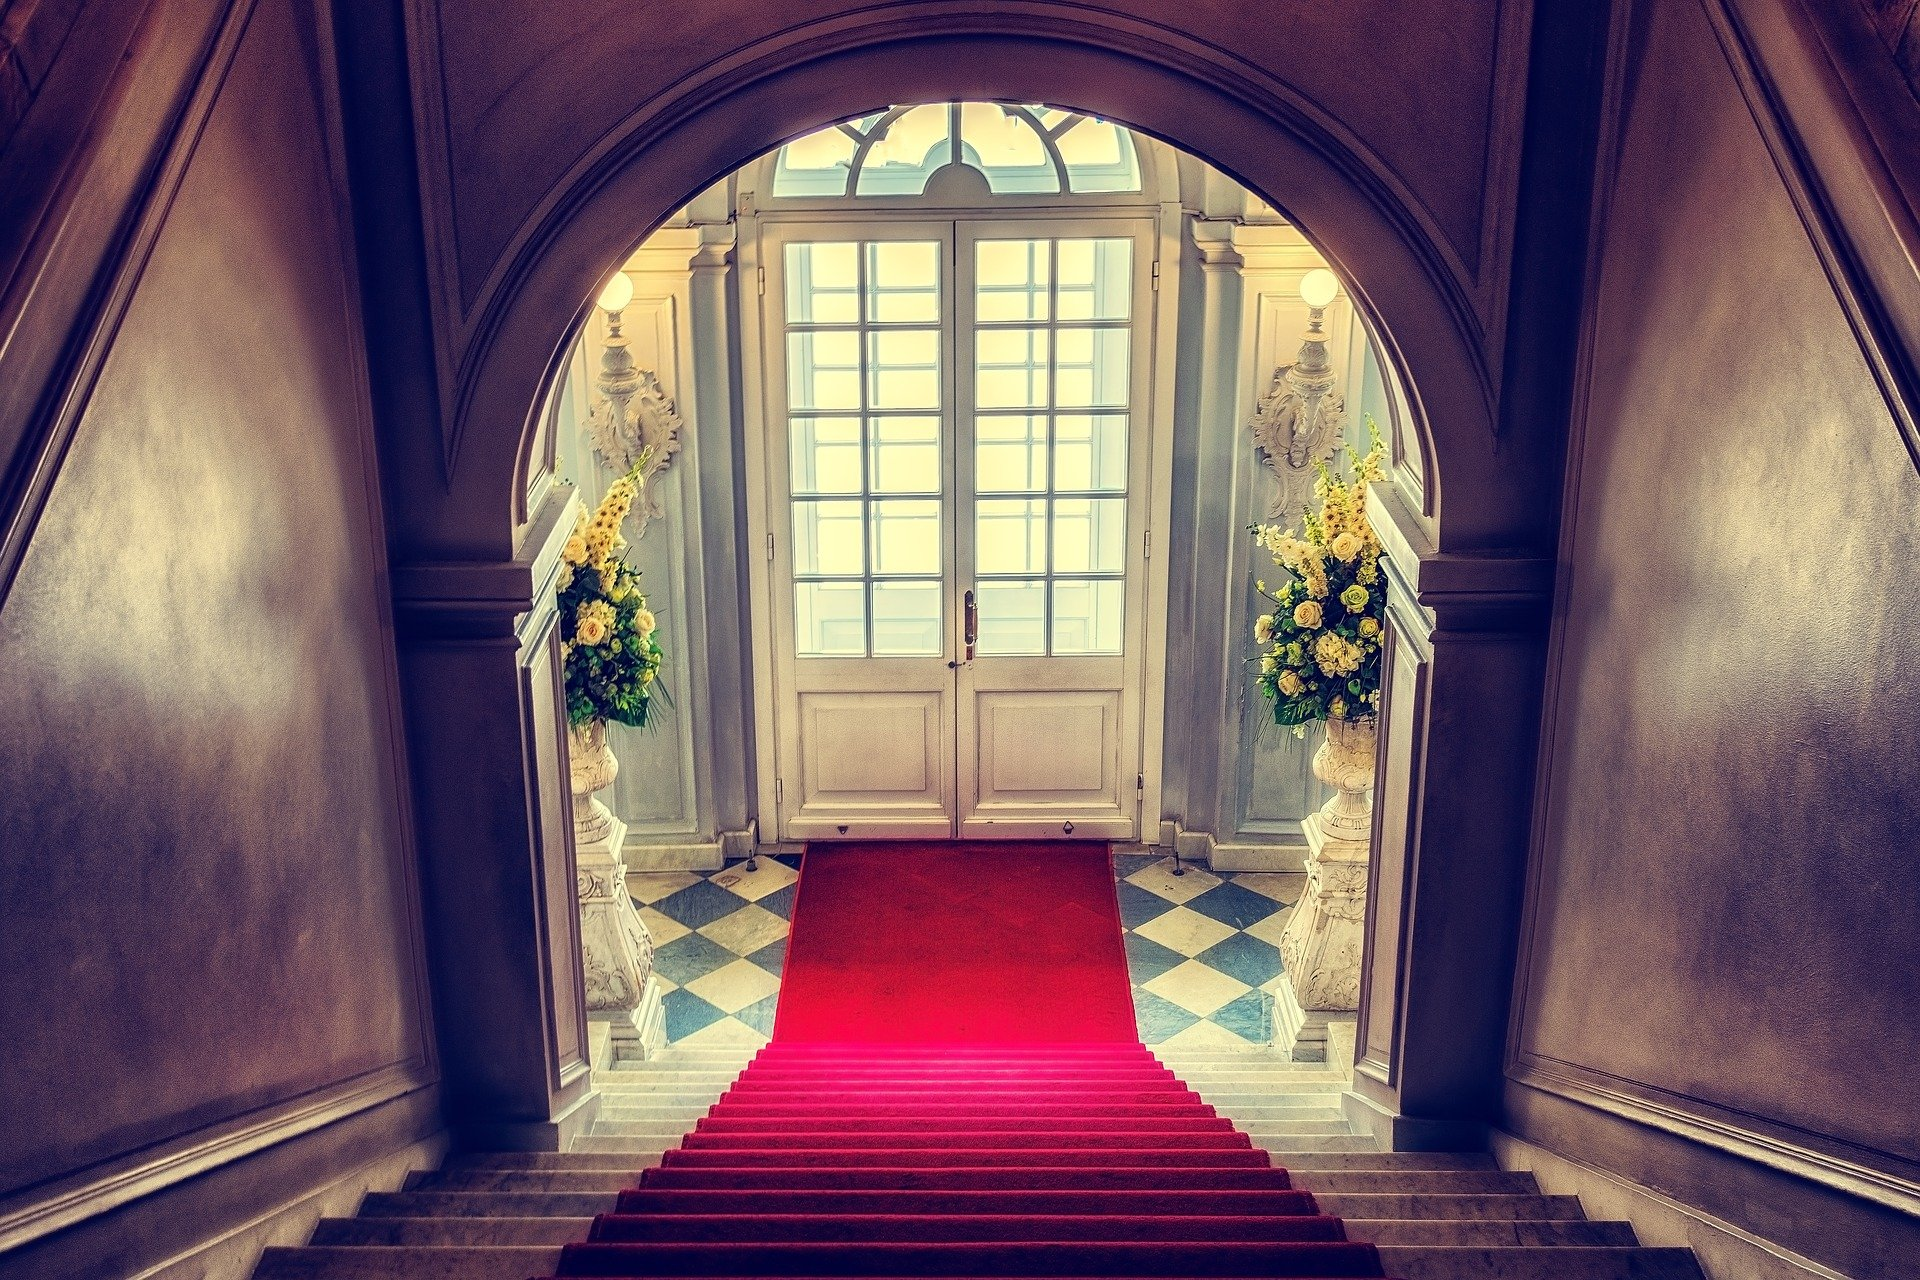 staircase-3728350_1920